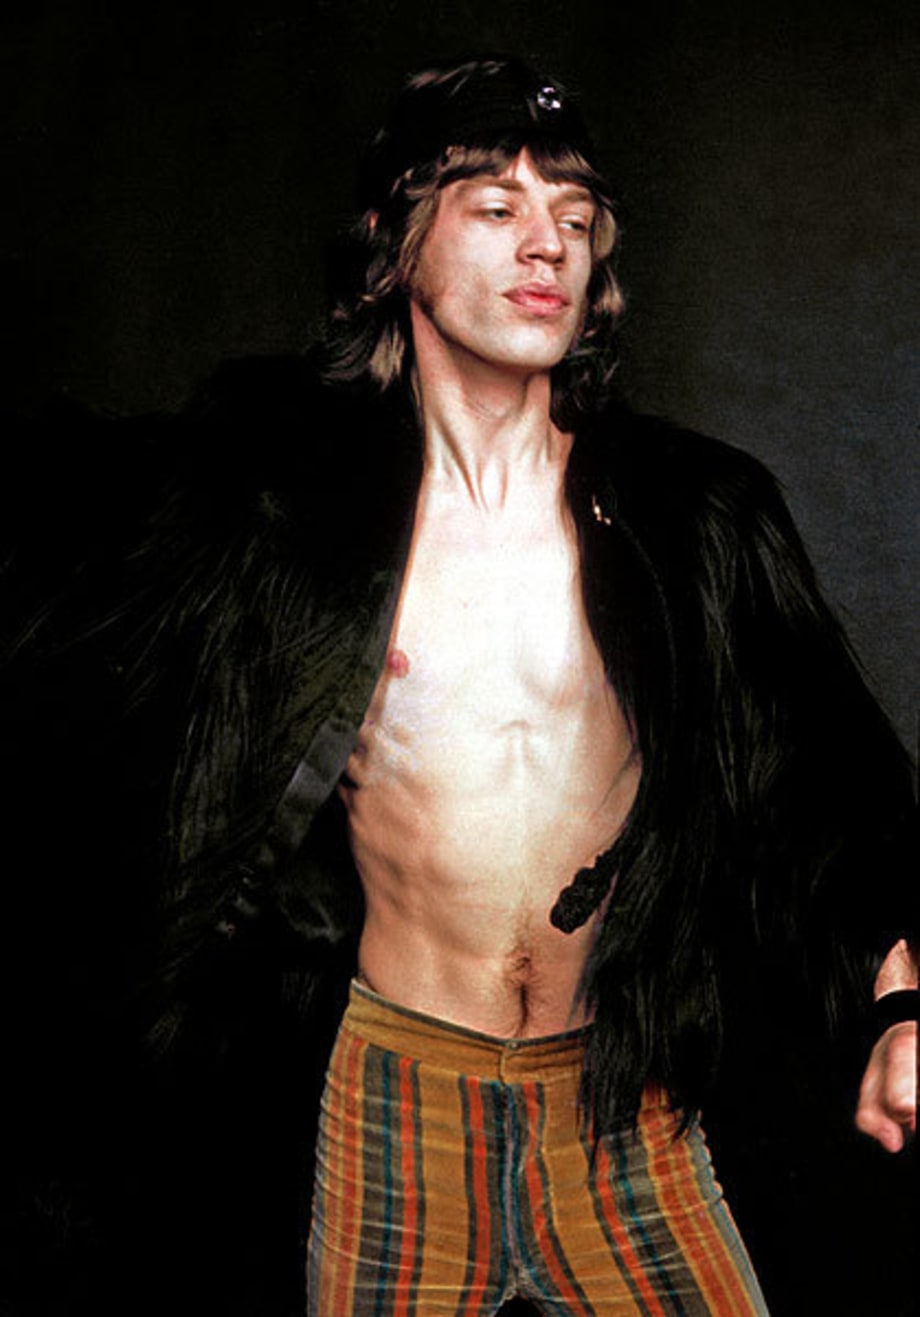 Portrait Session 1970s Mick Jagger Through The Years